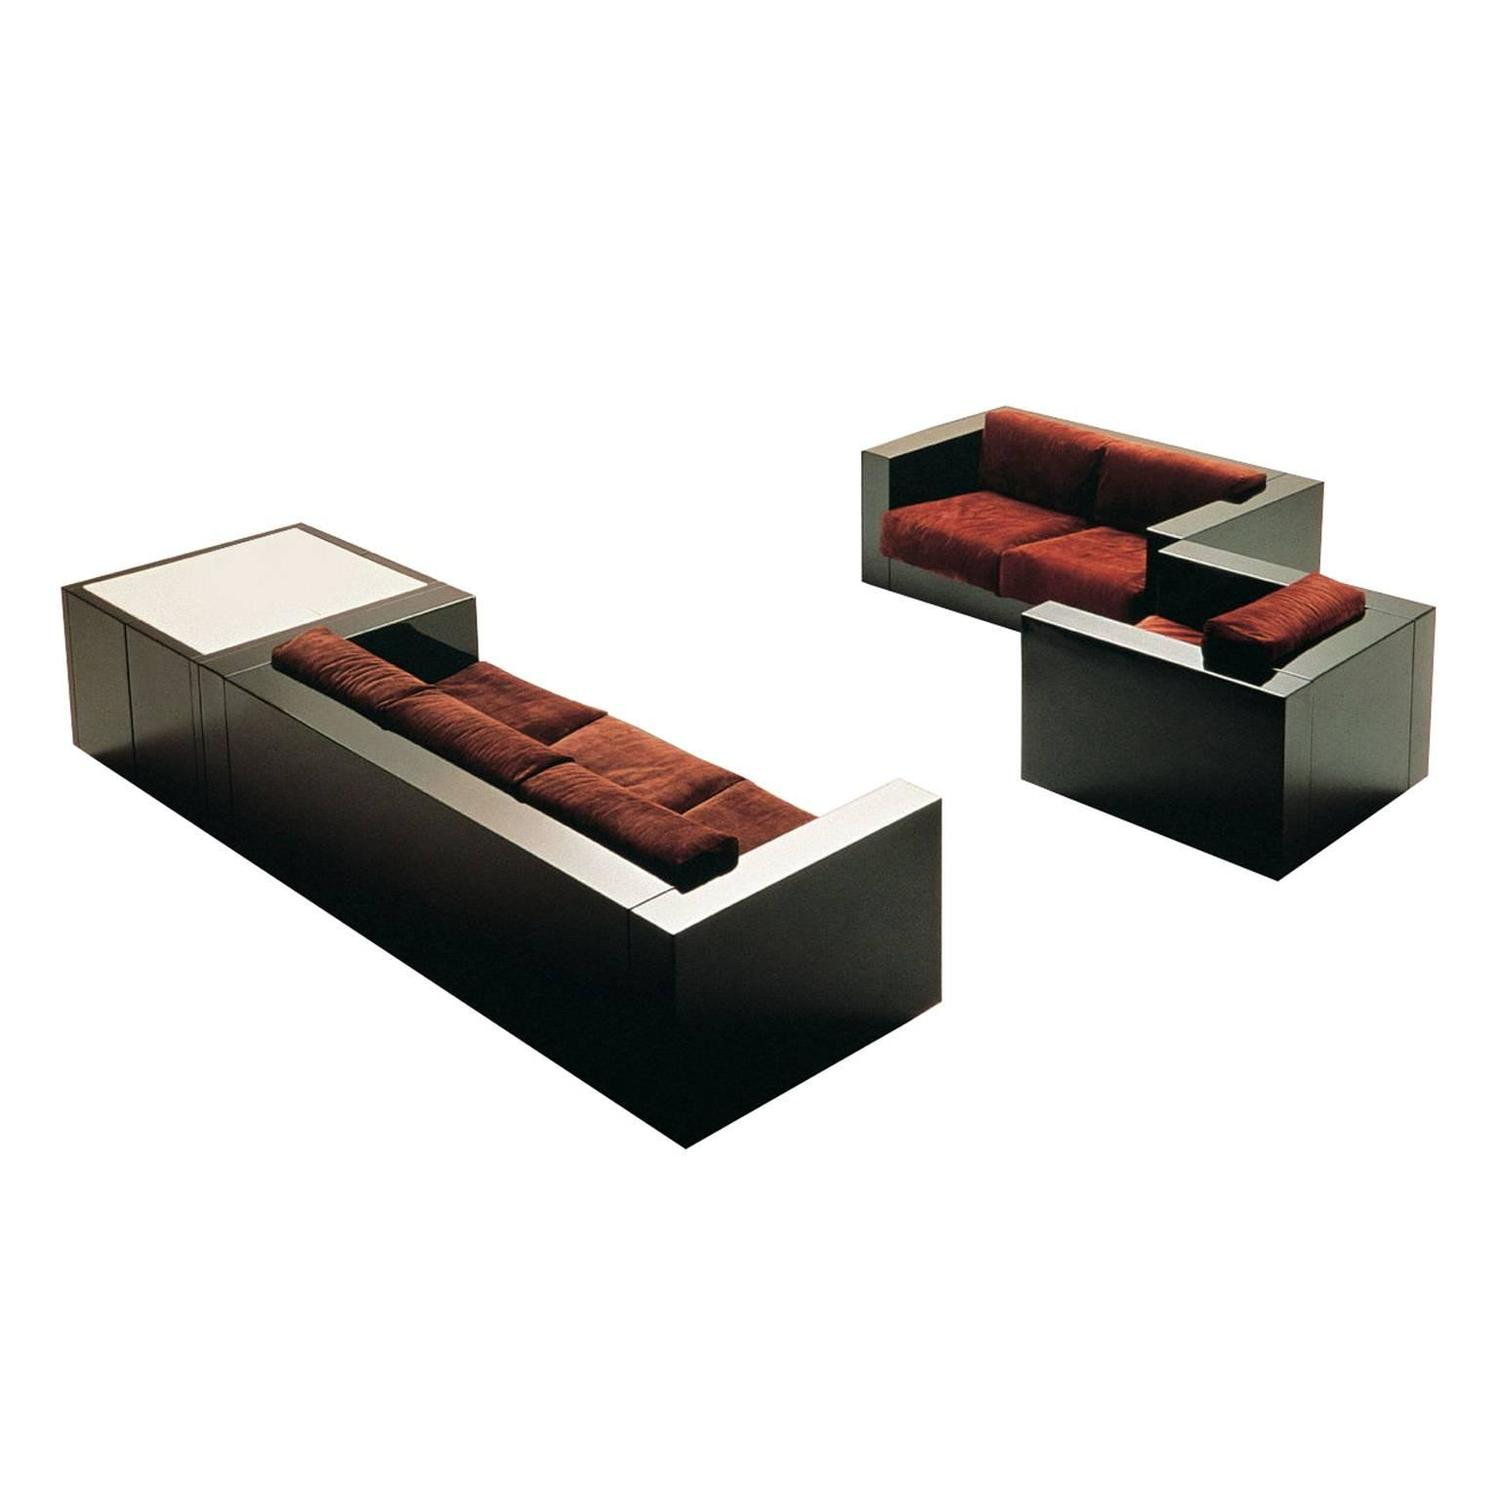 Saratoga Living Room Set By Lella And Massimo Vignelli For Poltronova At 1stdibs